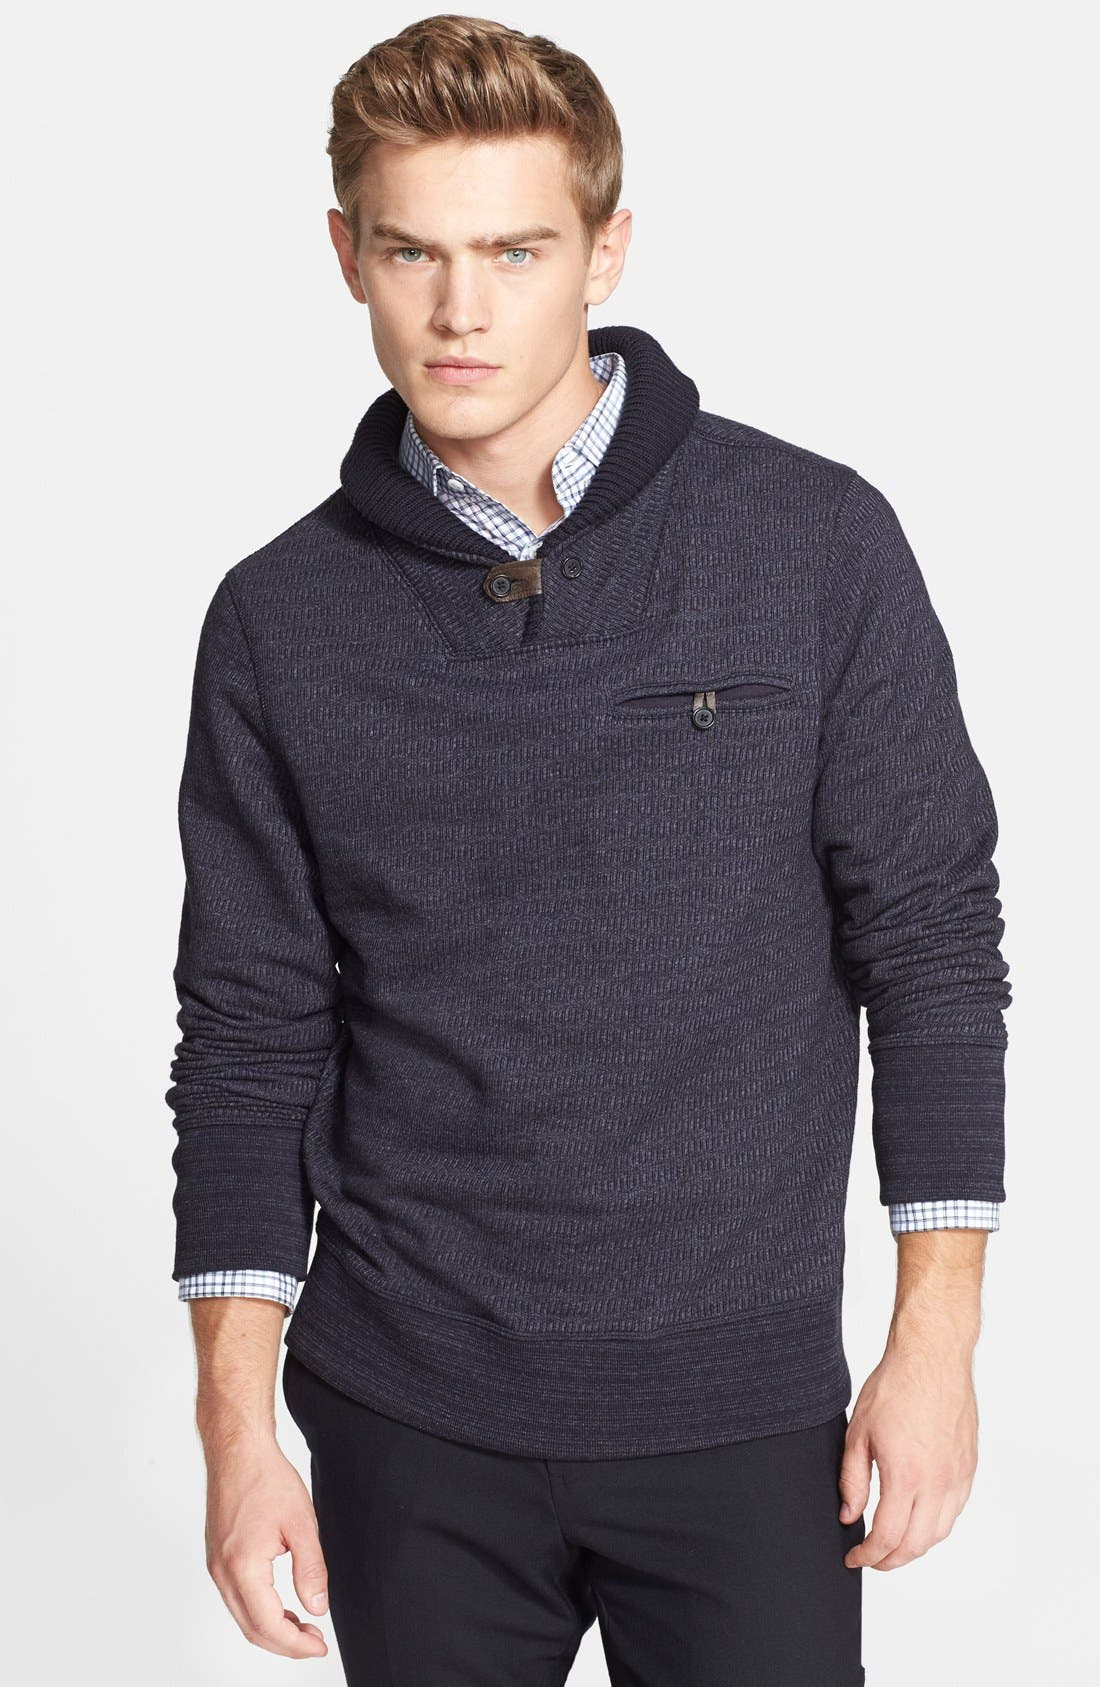 BILLY REID, 'Shiloh' Shawl Collar Sweater, Main thumbnail 1, color, 410